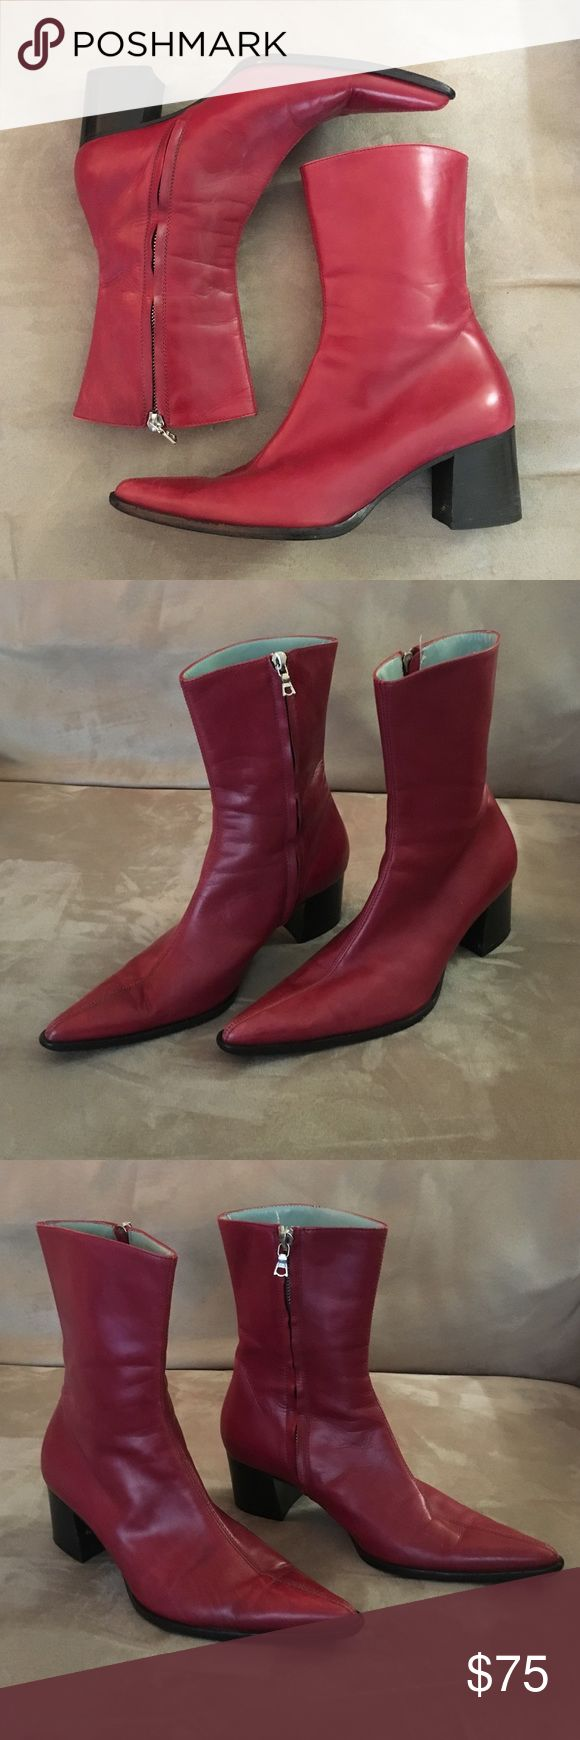 "Sigerson Morrison Italian red leather boots 6B Trendy and fun Sigerson Morrison Italian red leather boots in a size 6V. Boots feature zip side with 2"" chunk heel, 7 1/2"" boot height from back of heel, 9"" around ankle, and 10"" around top of boot. Sigerson Morrison Shoes Heeled Boots"